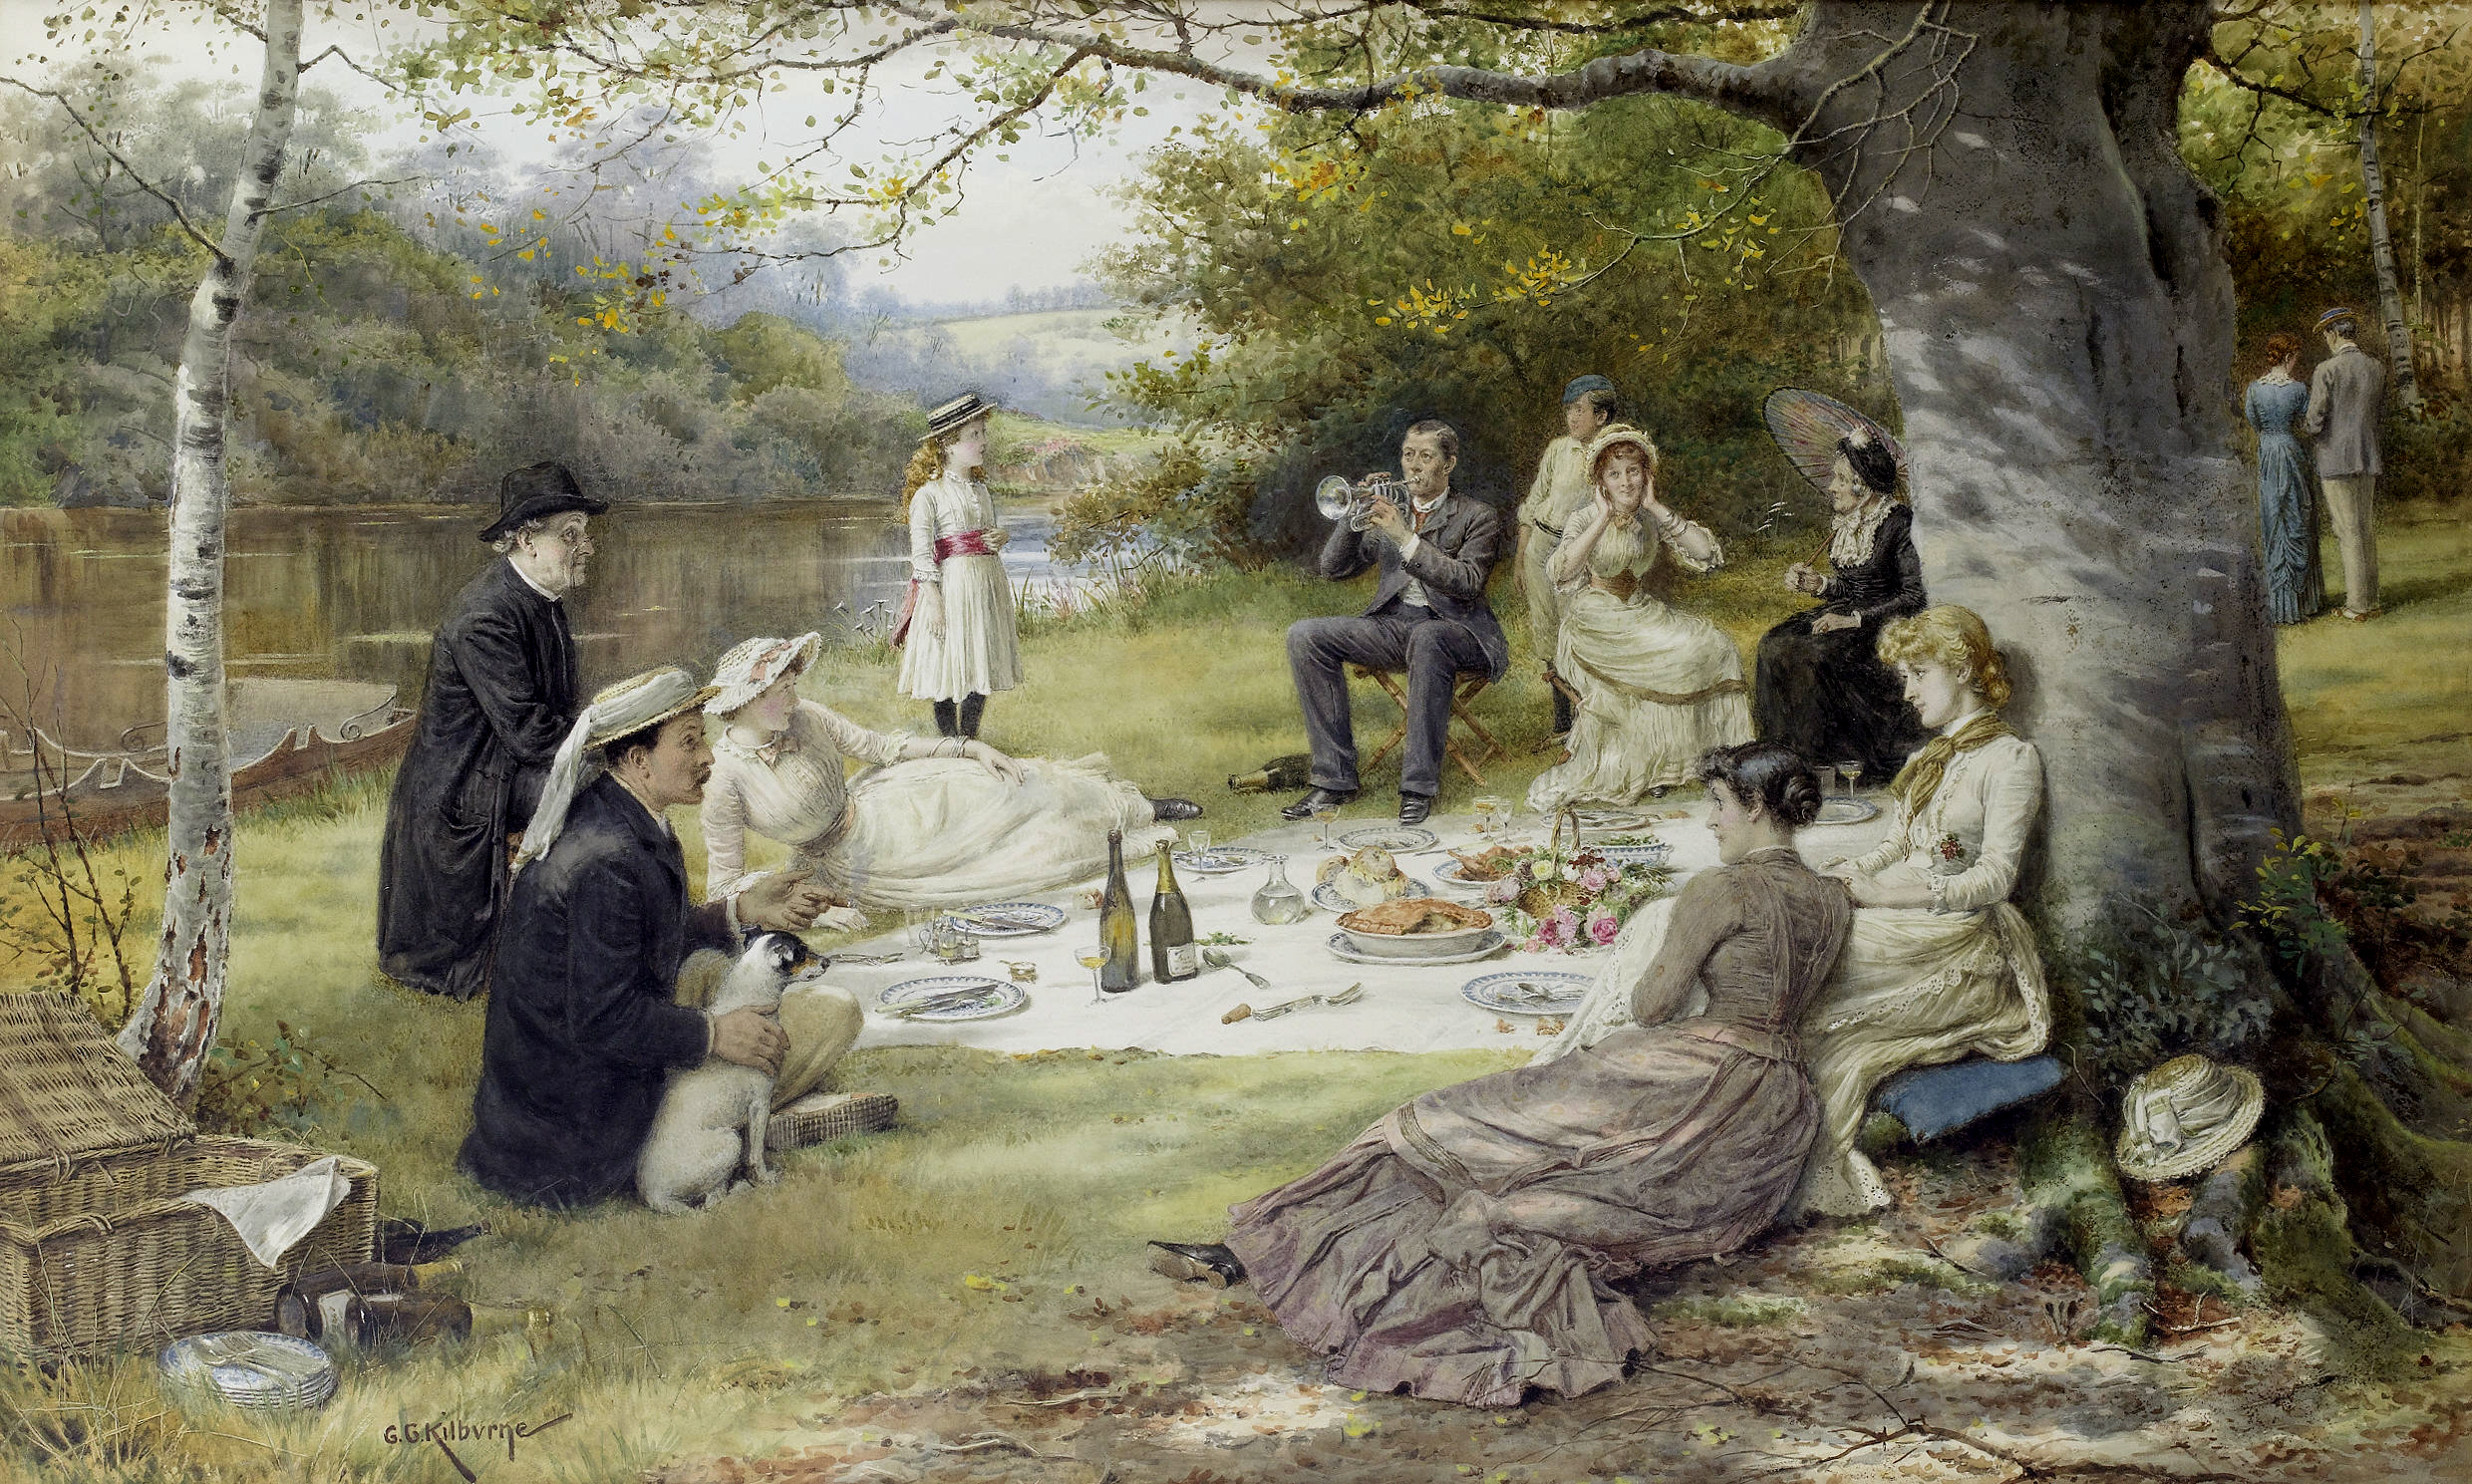 The Picnic. Signed G.G.Kilburne. Watercolour heightened with touches of white, 66.5 x 110 cm